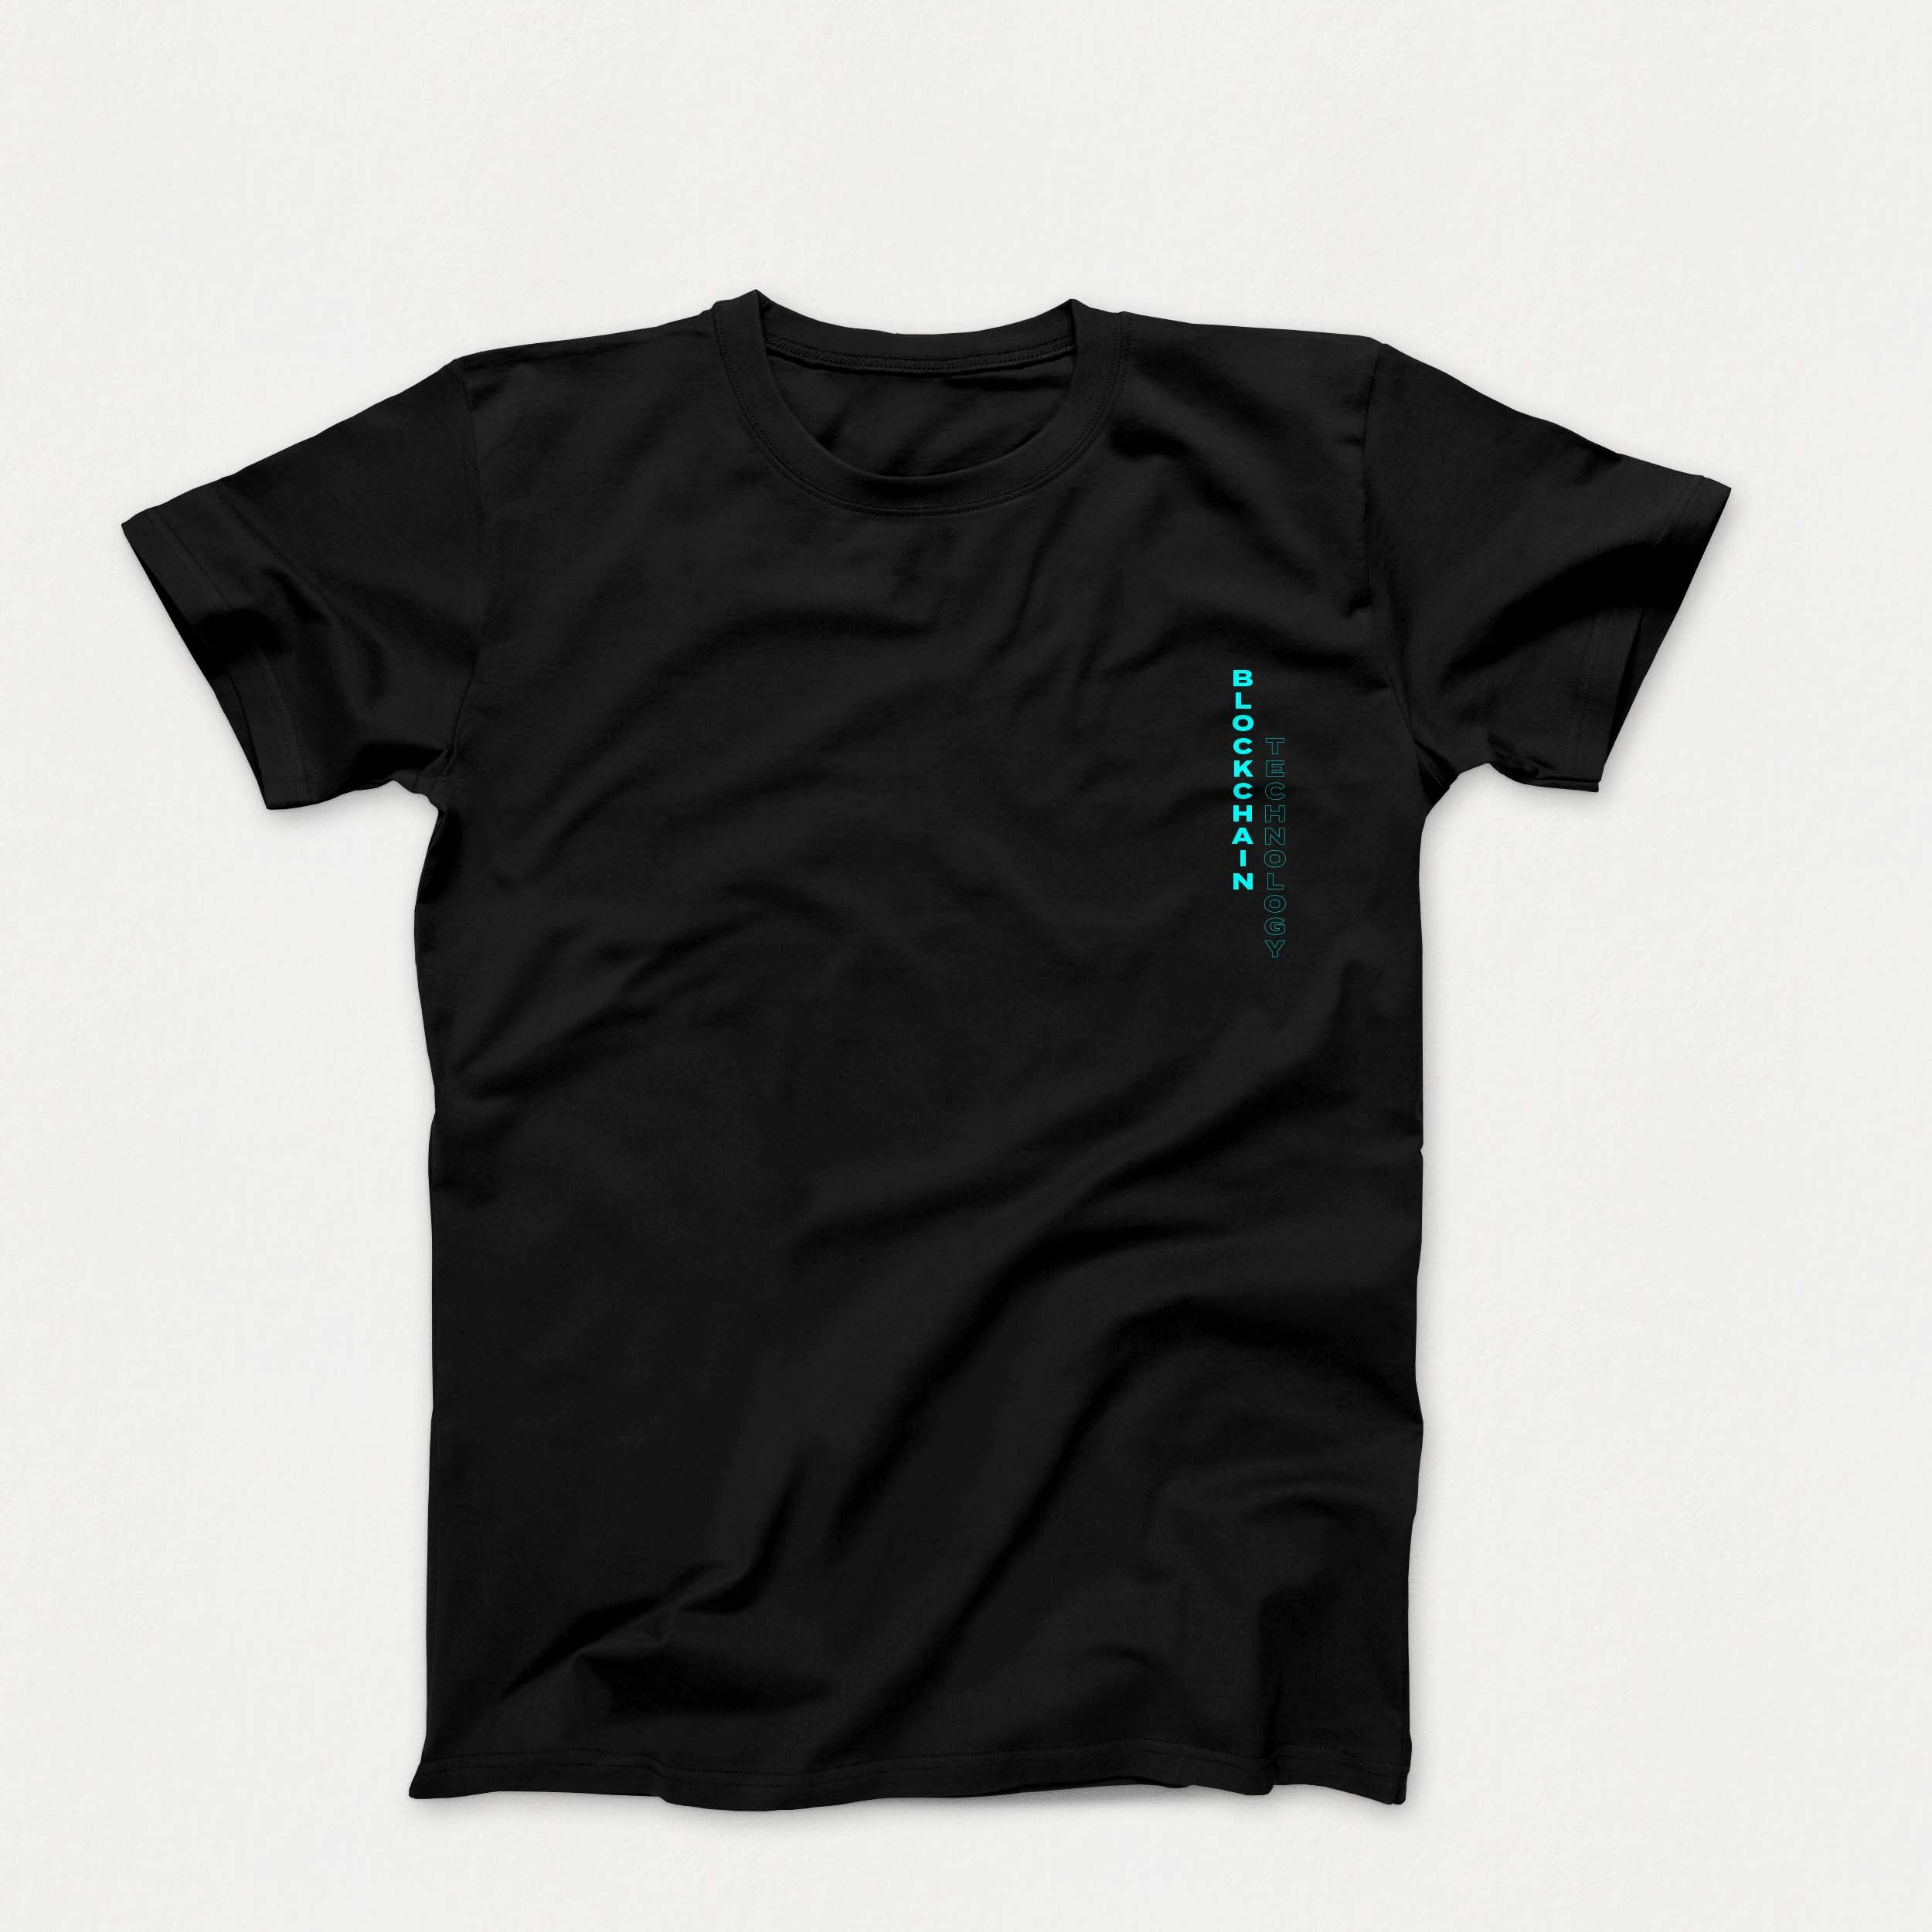 'Blockchain Technology' T-Shirt